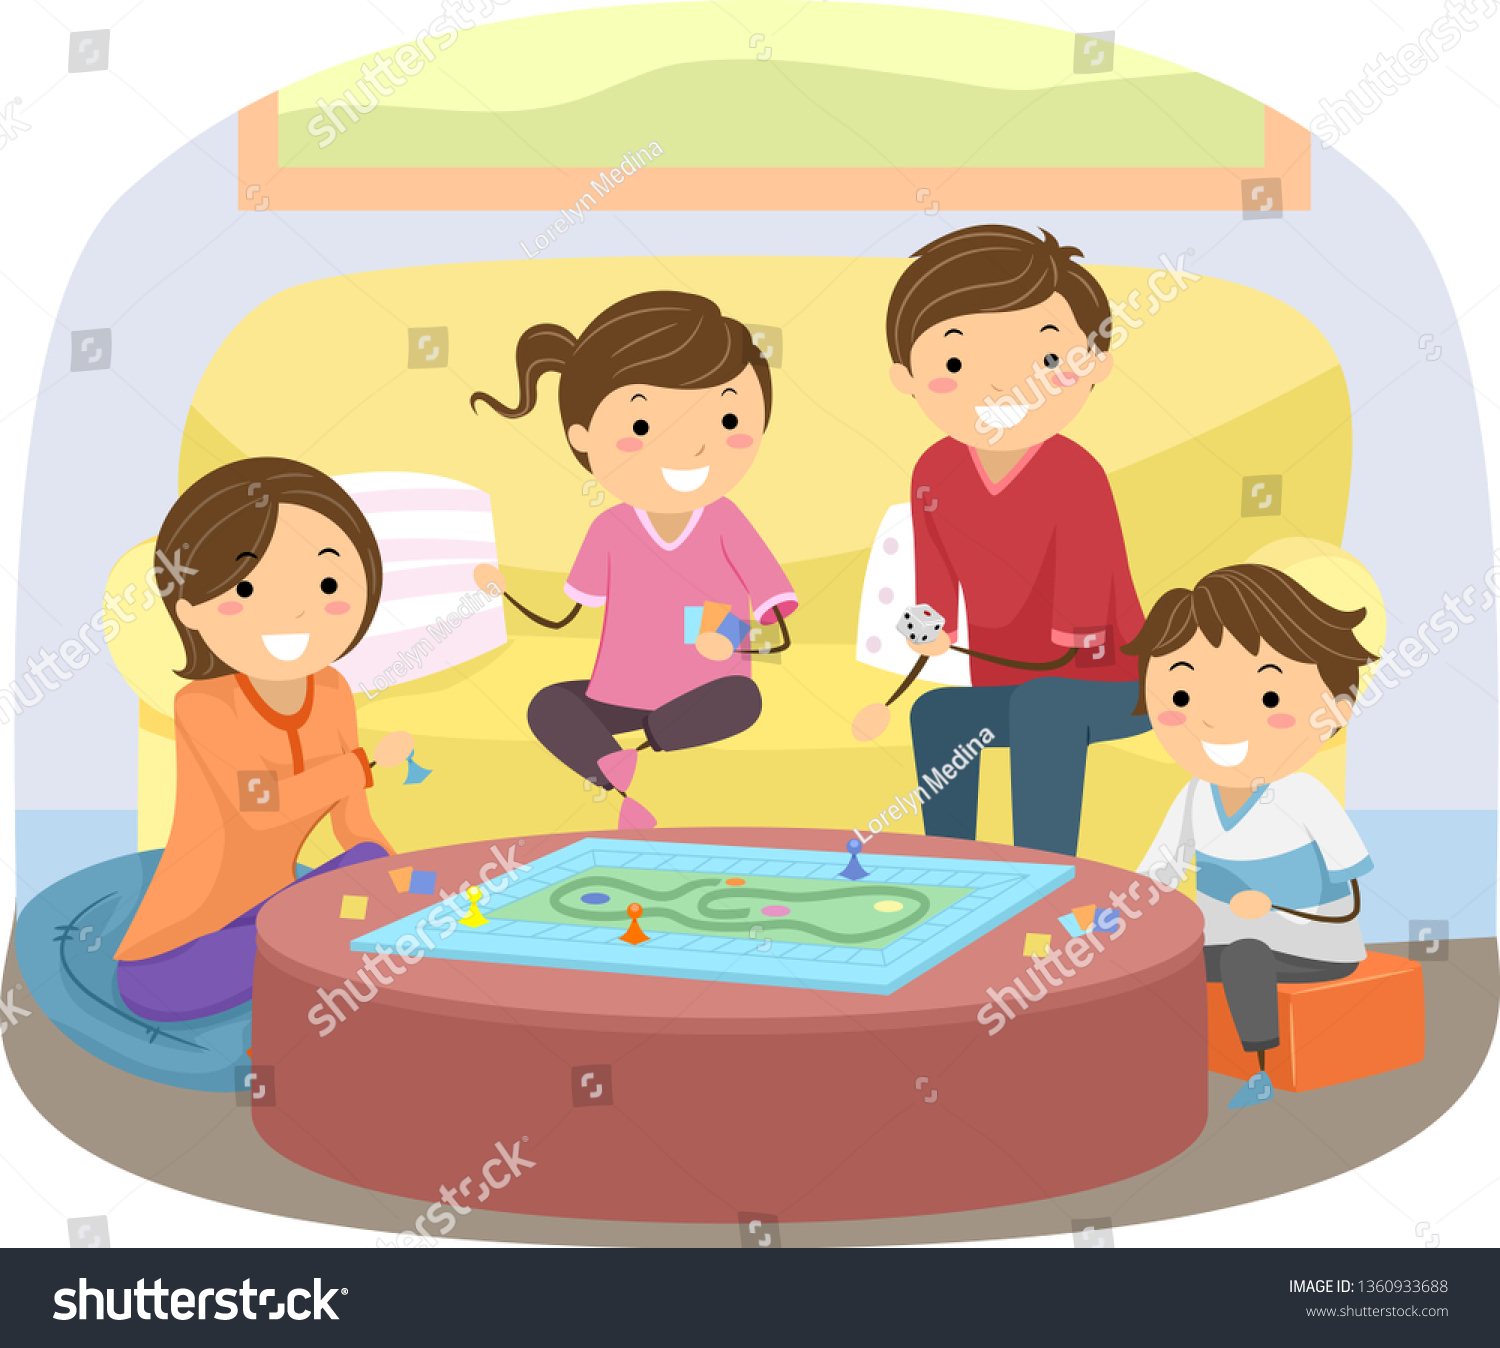 Illustration Stickman Family Playing Board Game Stock Vector Royalty Free 1360933688